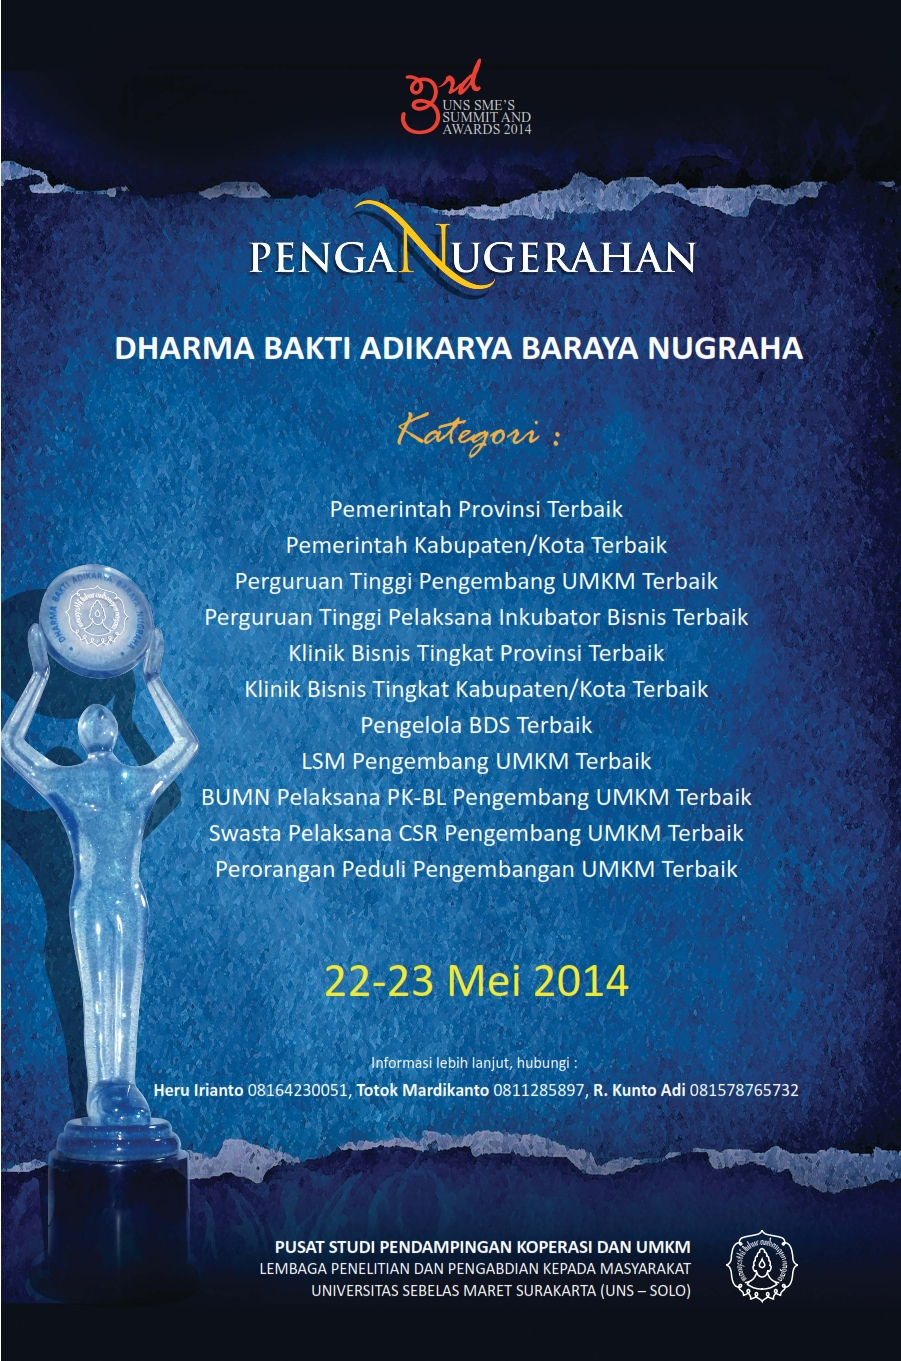 poster-smses-awards-2014-lppm-uns